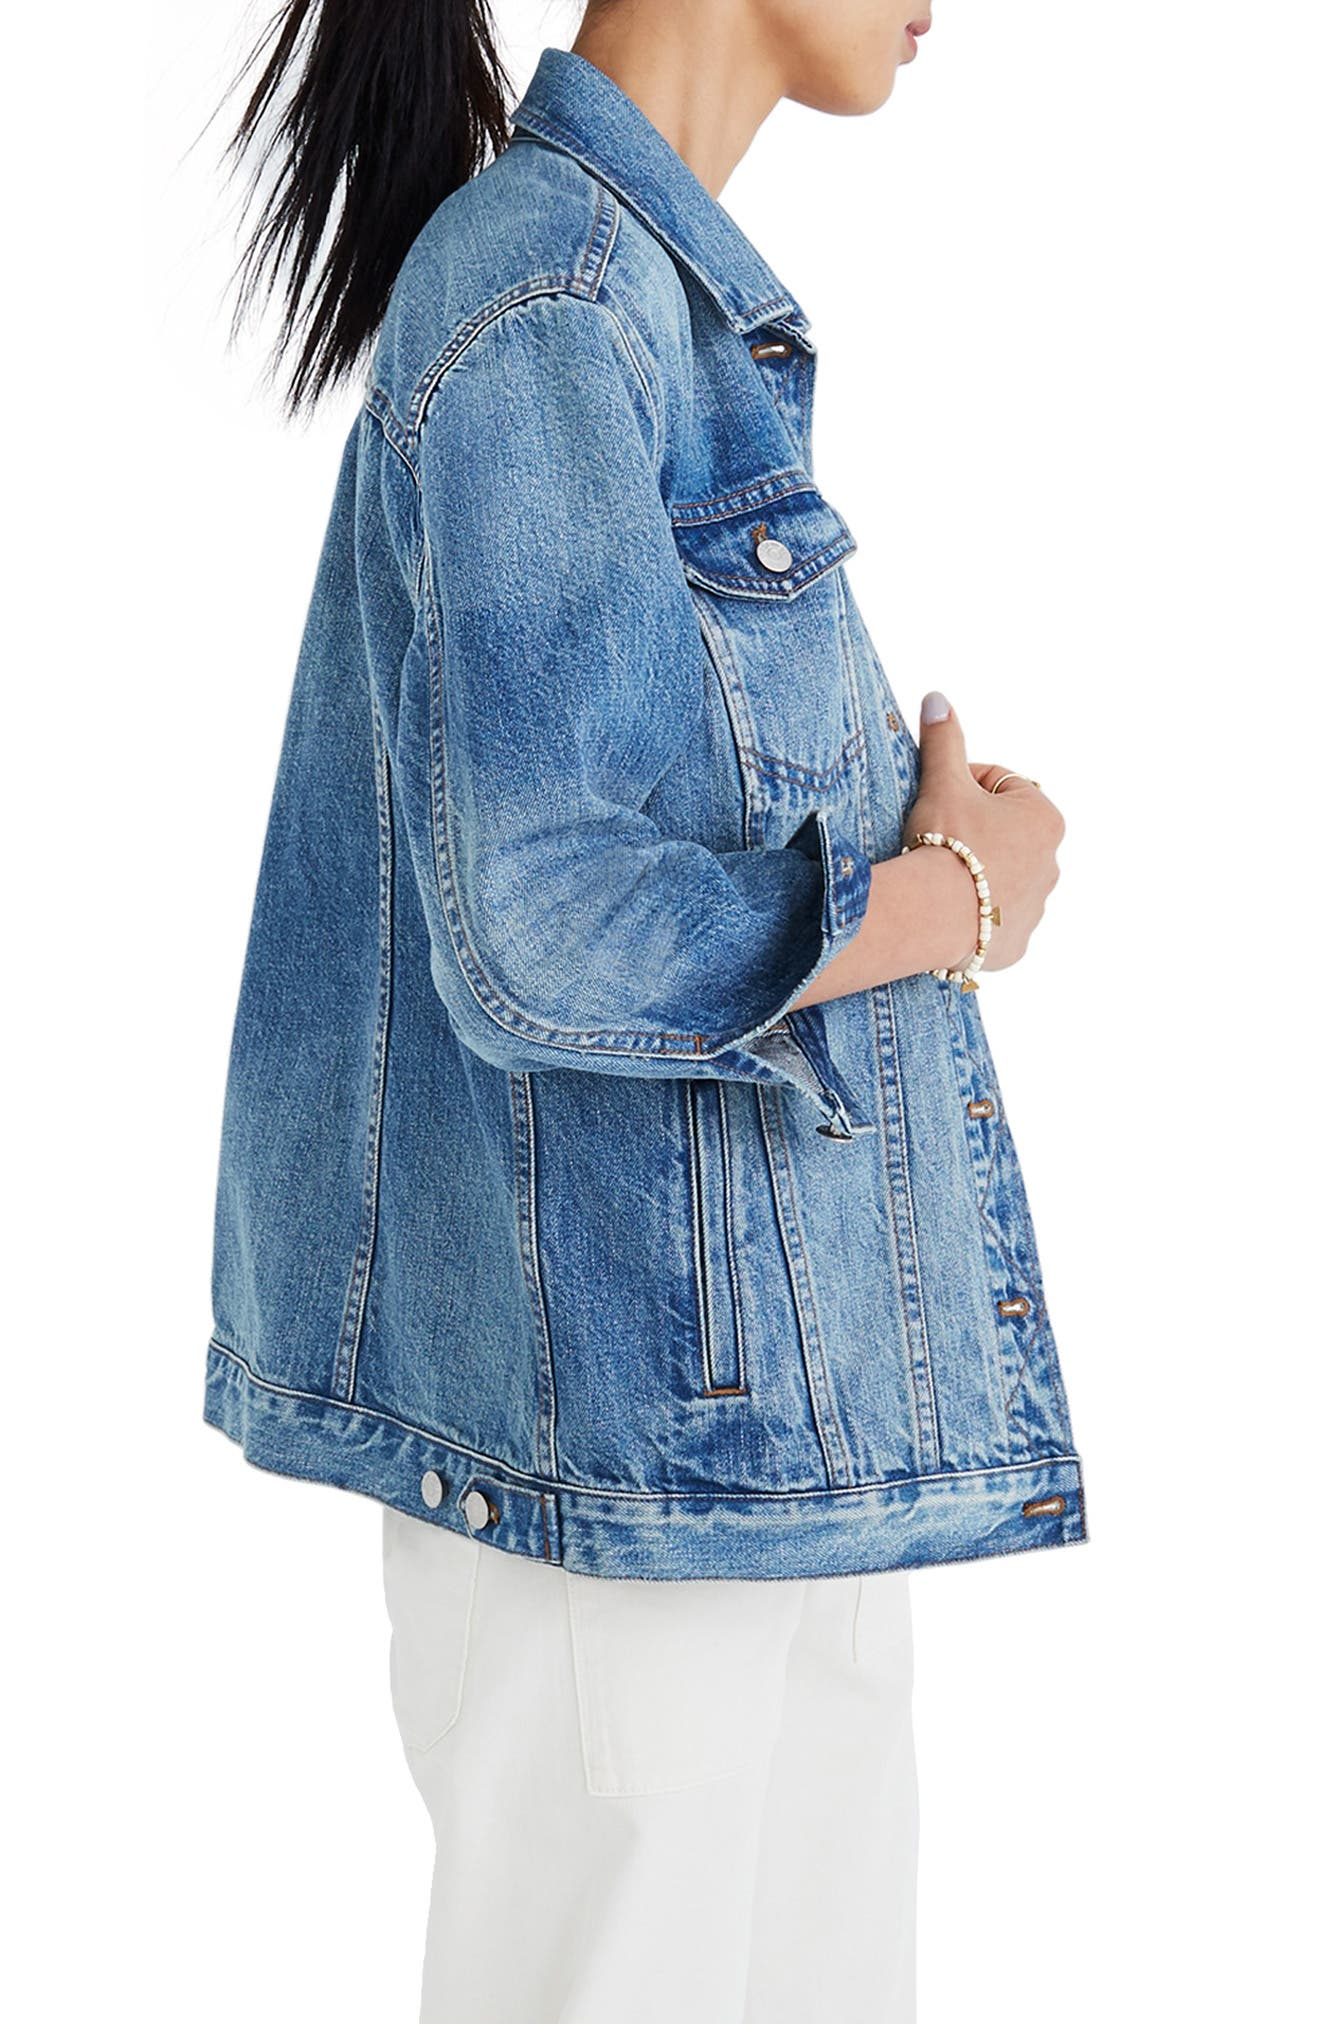 MADEWELL, Oversize Denim Jacket, Alternate thumbnail 4, color, CAPSTONE WASH